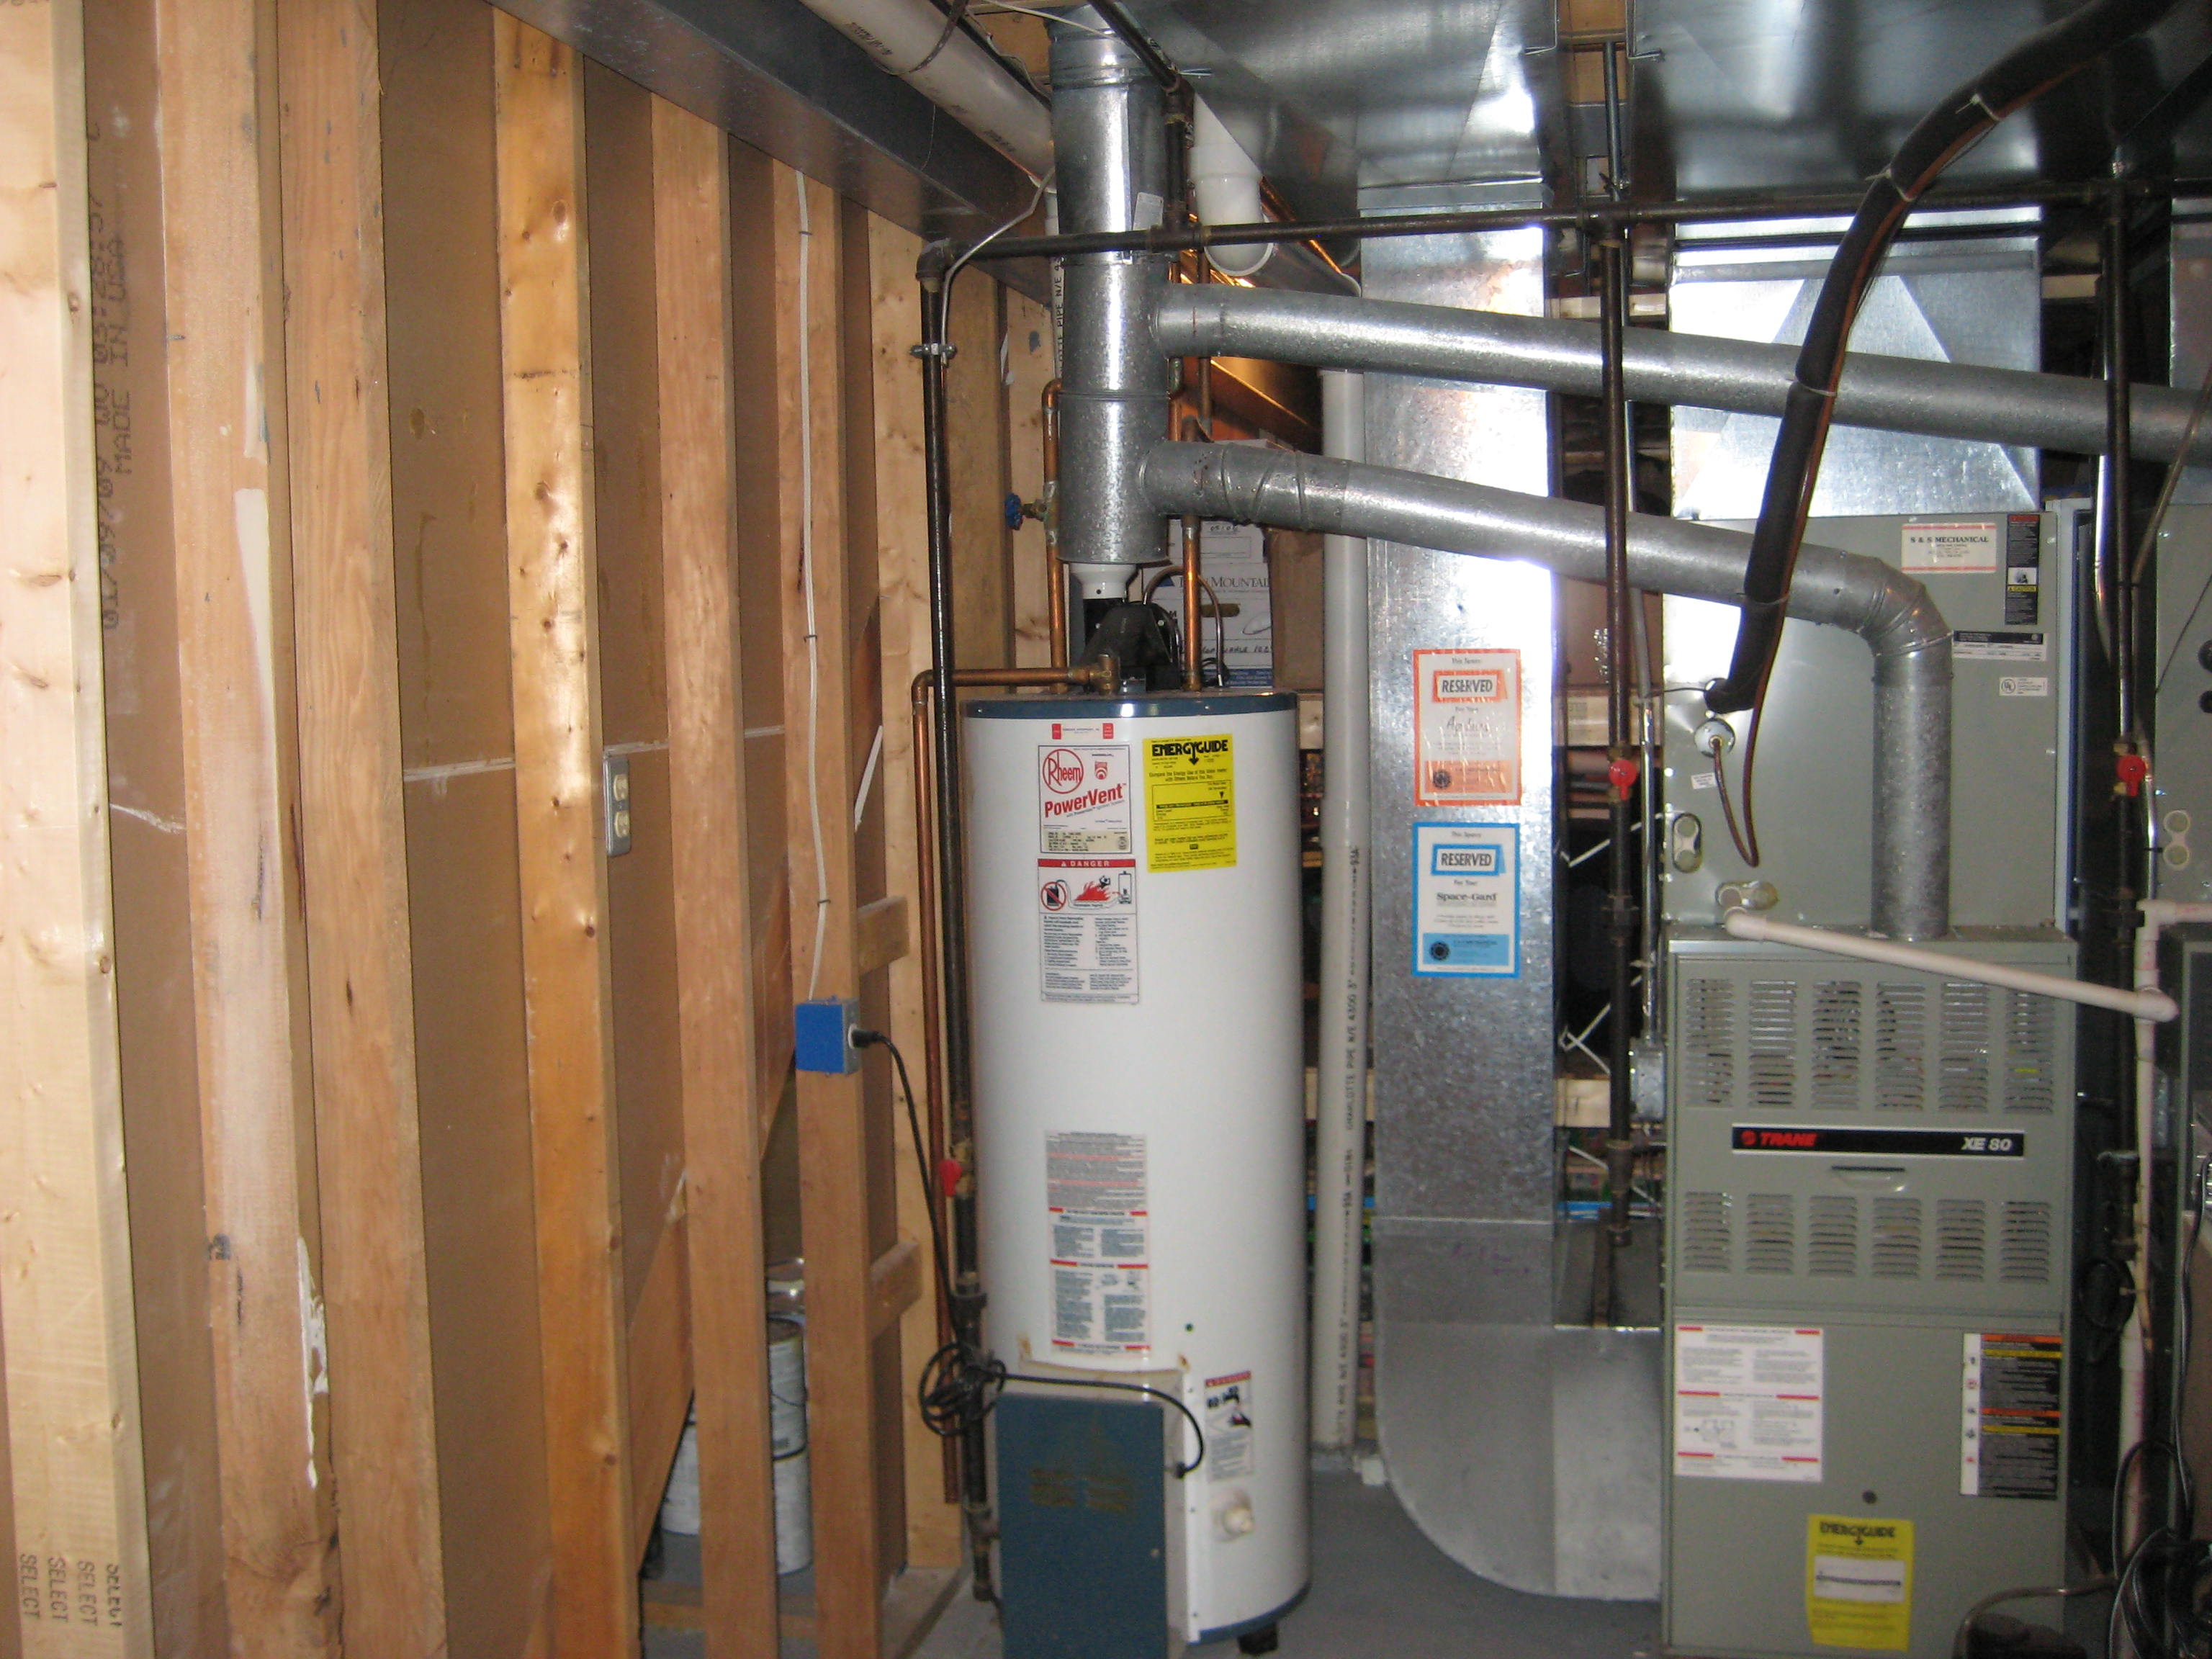 How to vent a hot water heater - Gas Water Heater